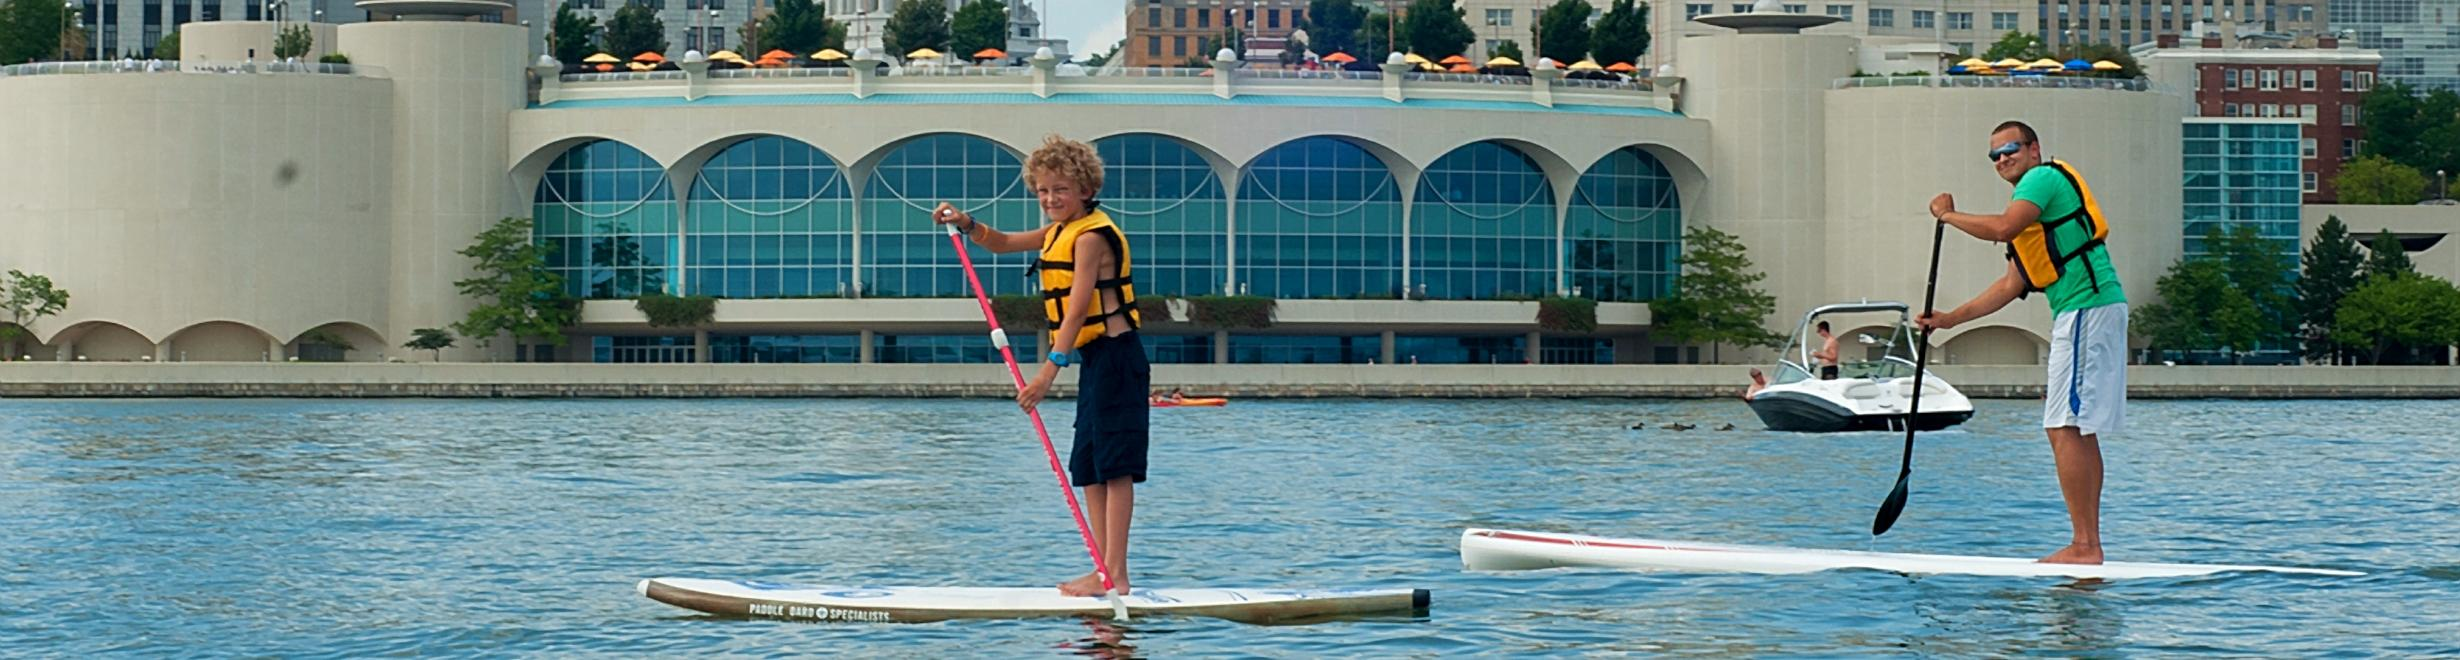 Stand Up Paddleboarding, Monona Terrace